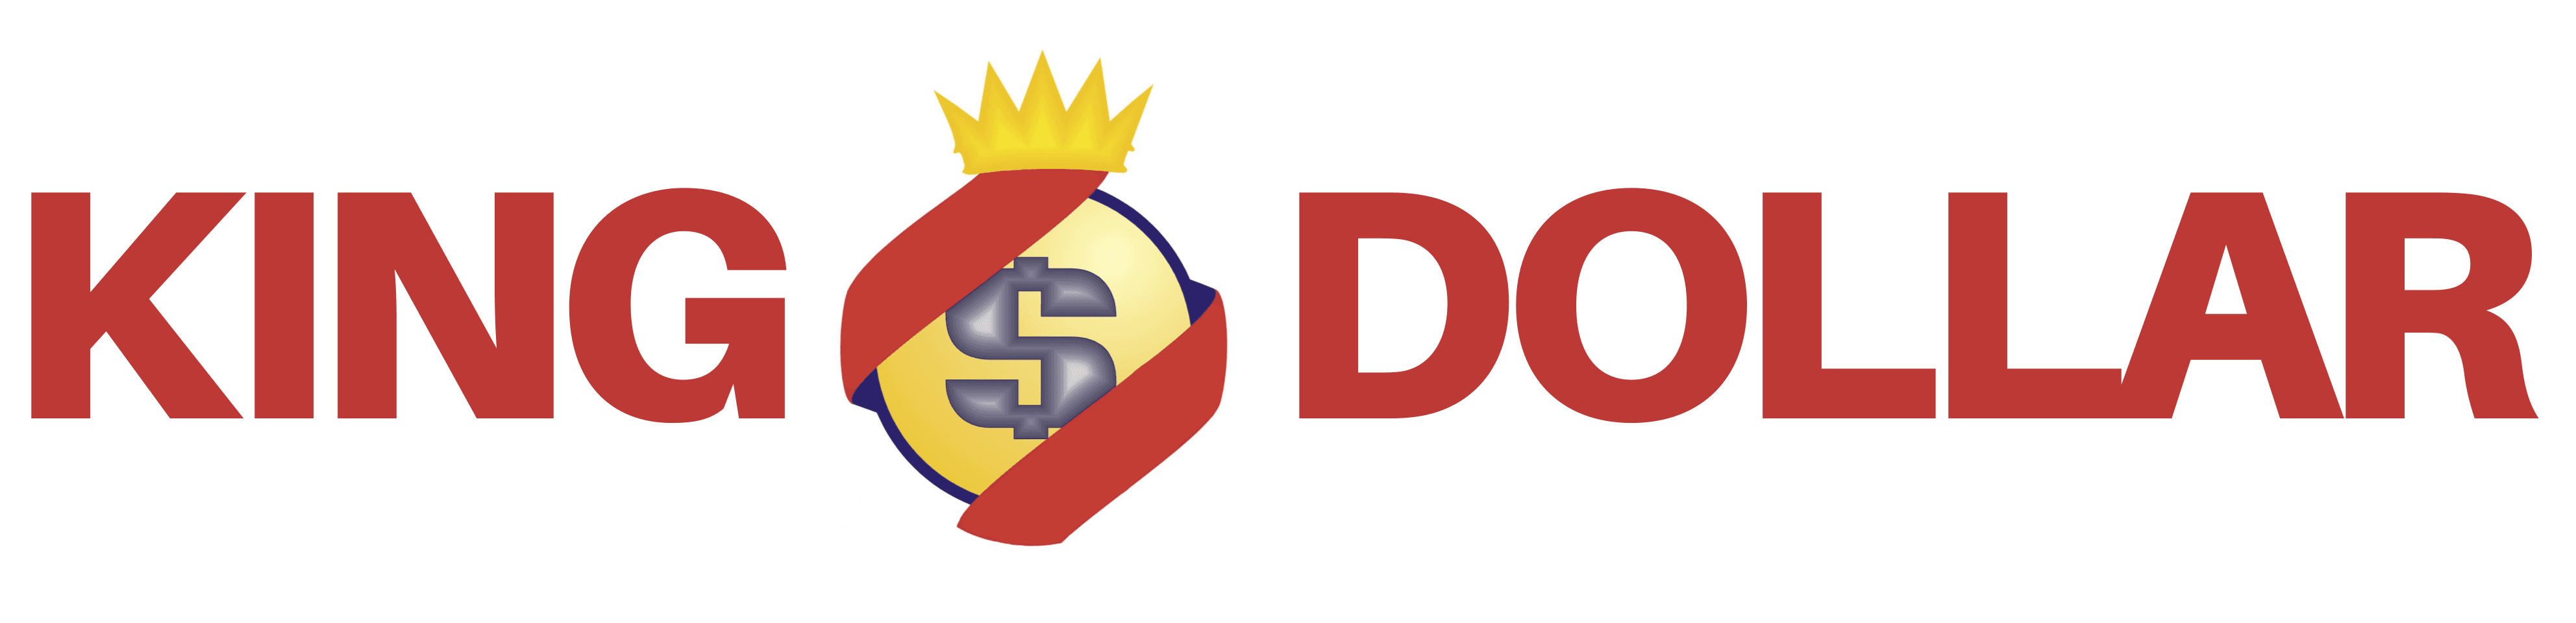 King Dollar Store Logo